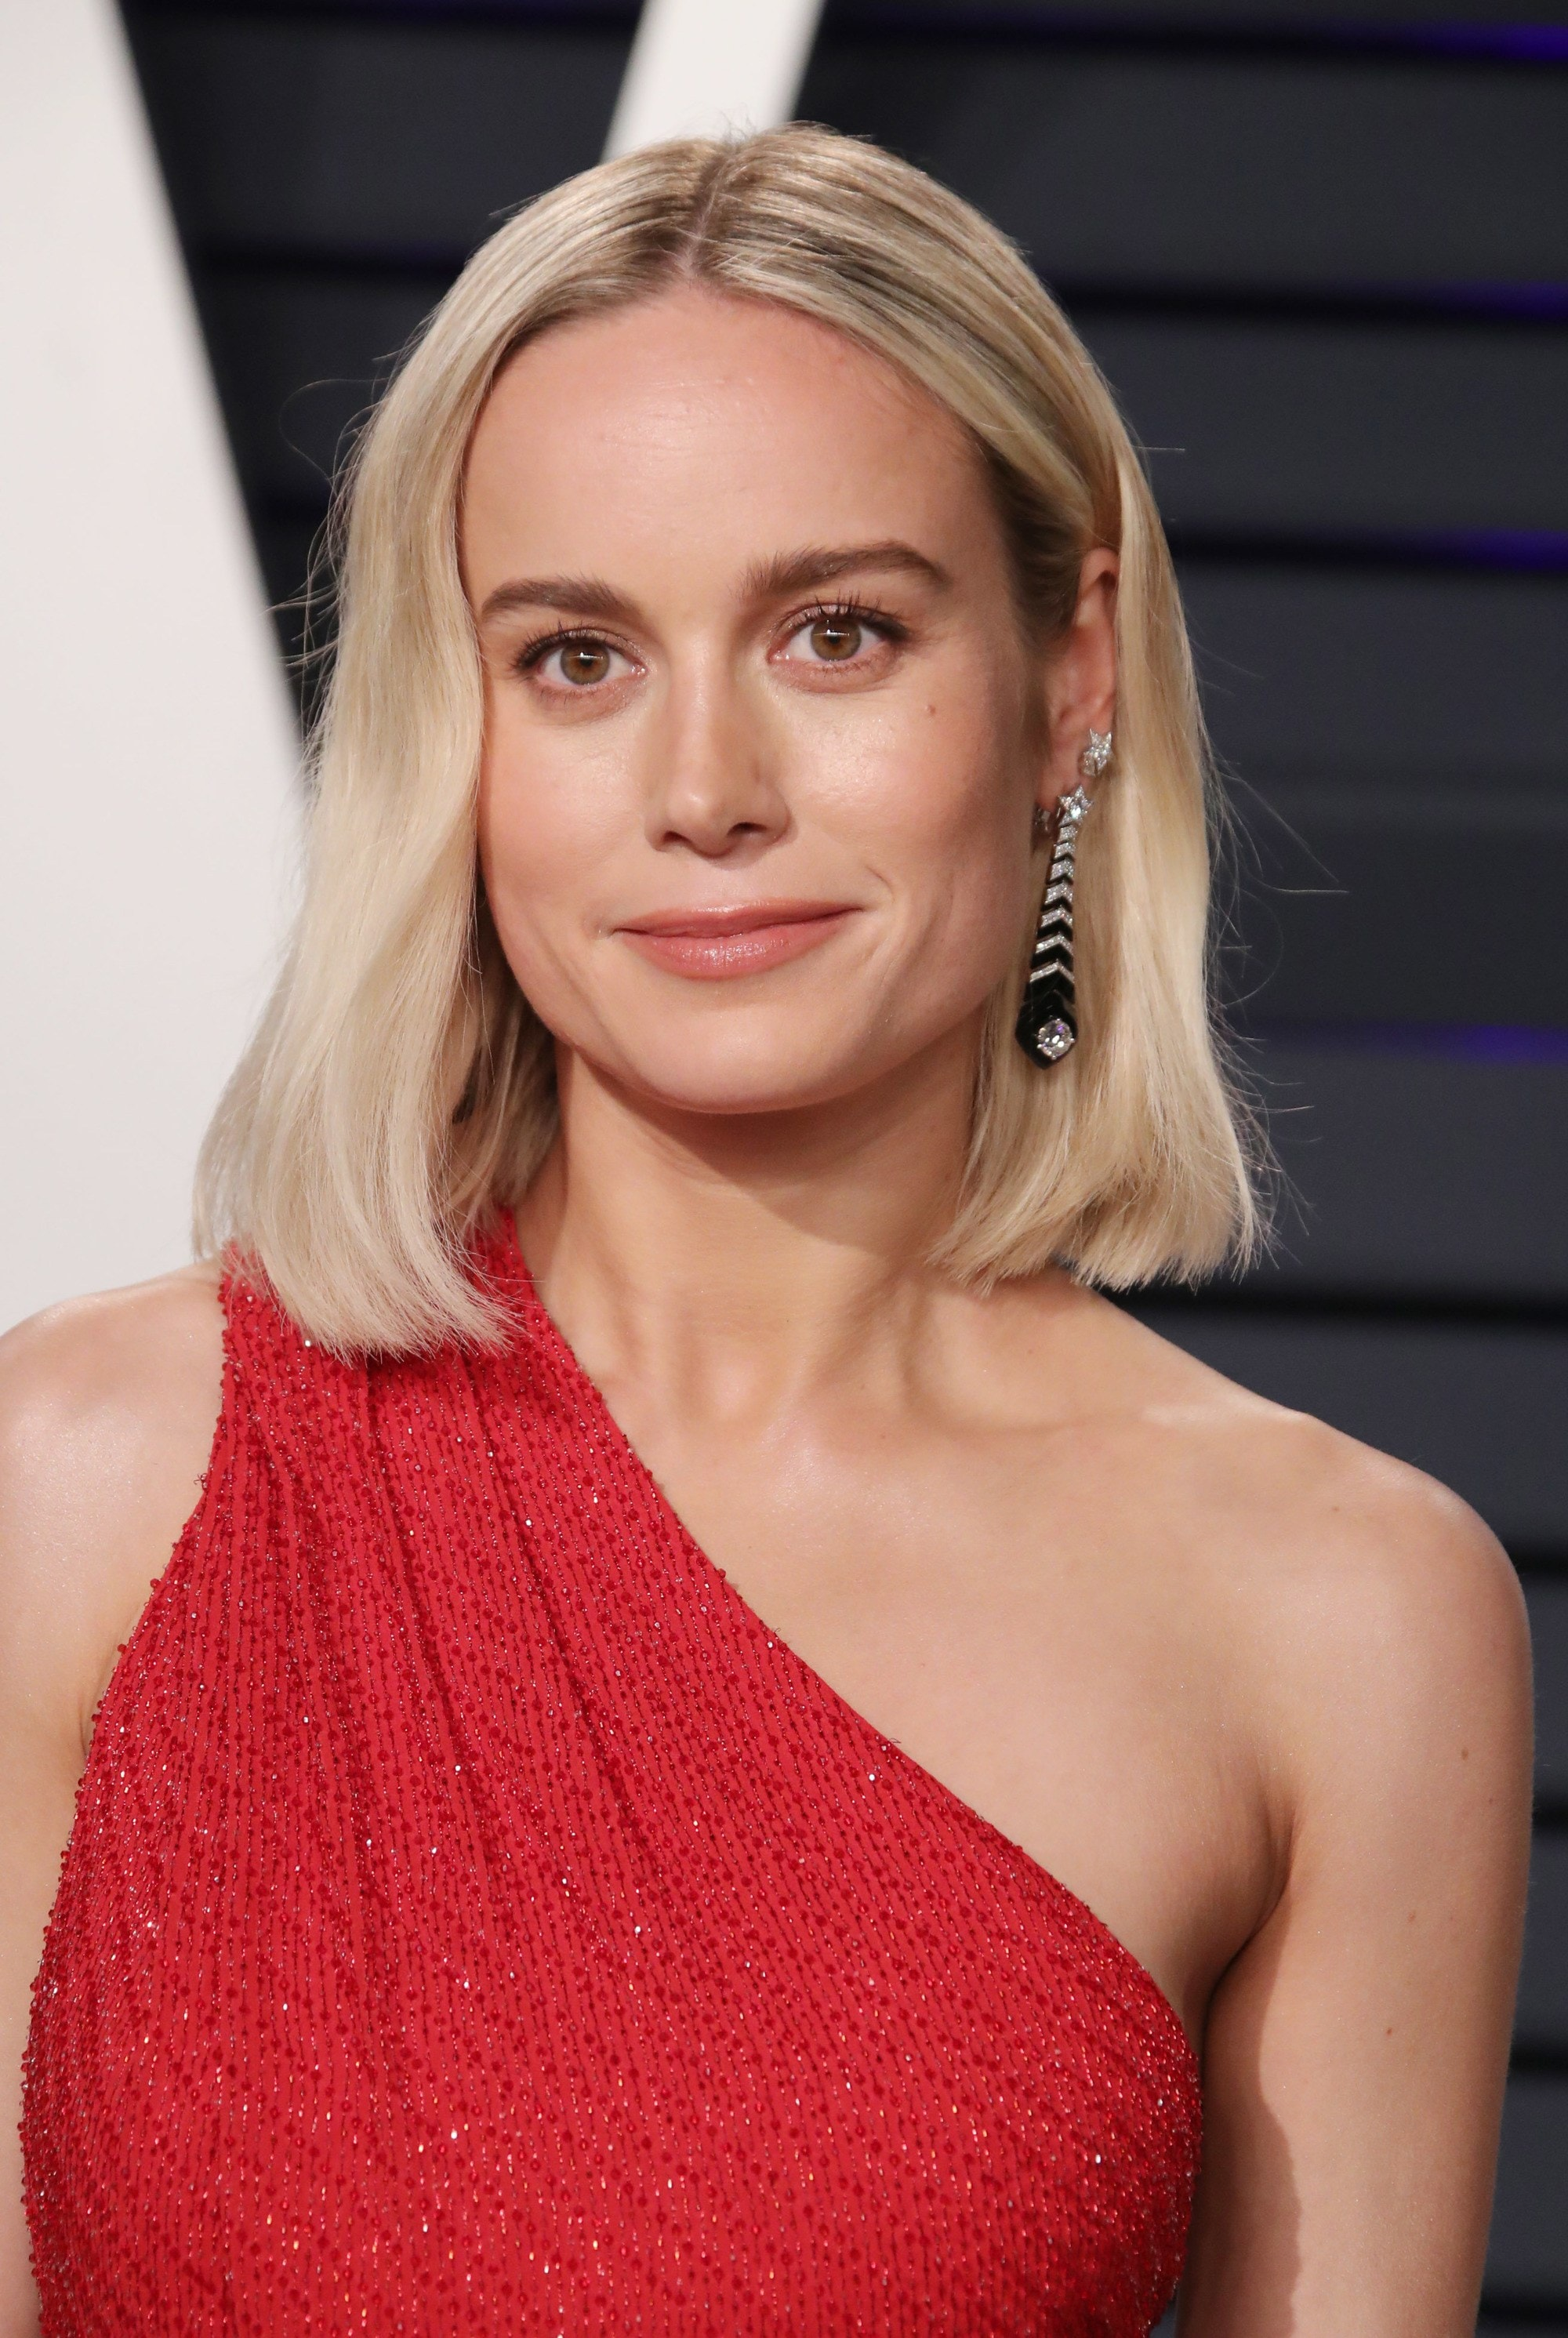 Bob hairstyles: Bie Larson with platinum blonde long wavy bob wearing red dress on the red carpet